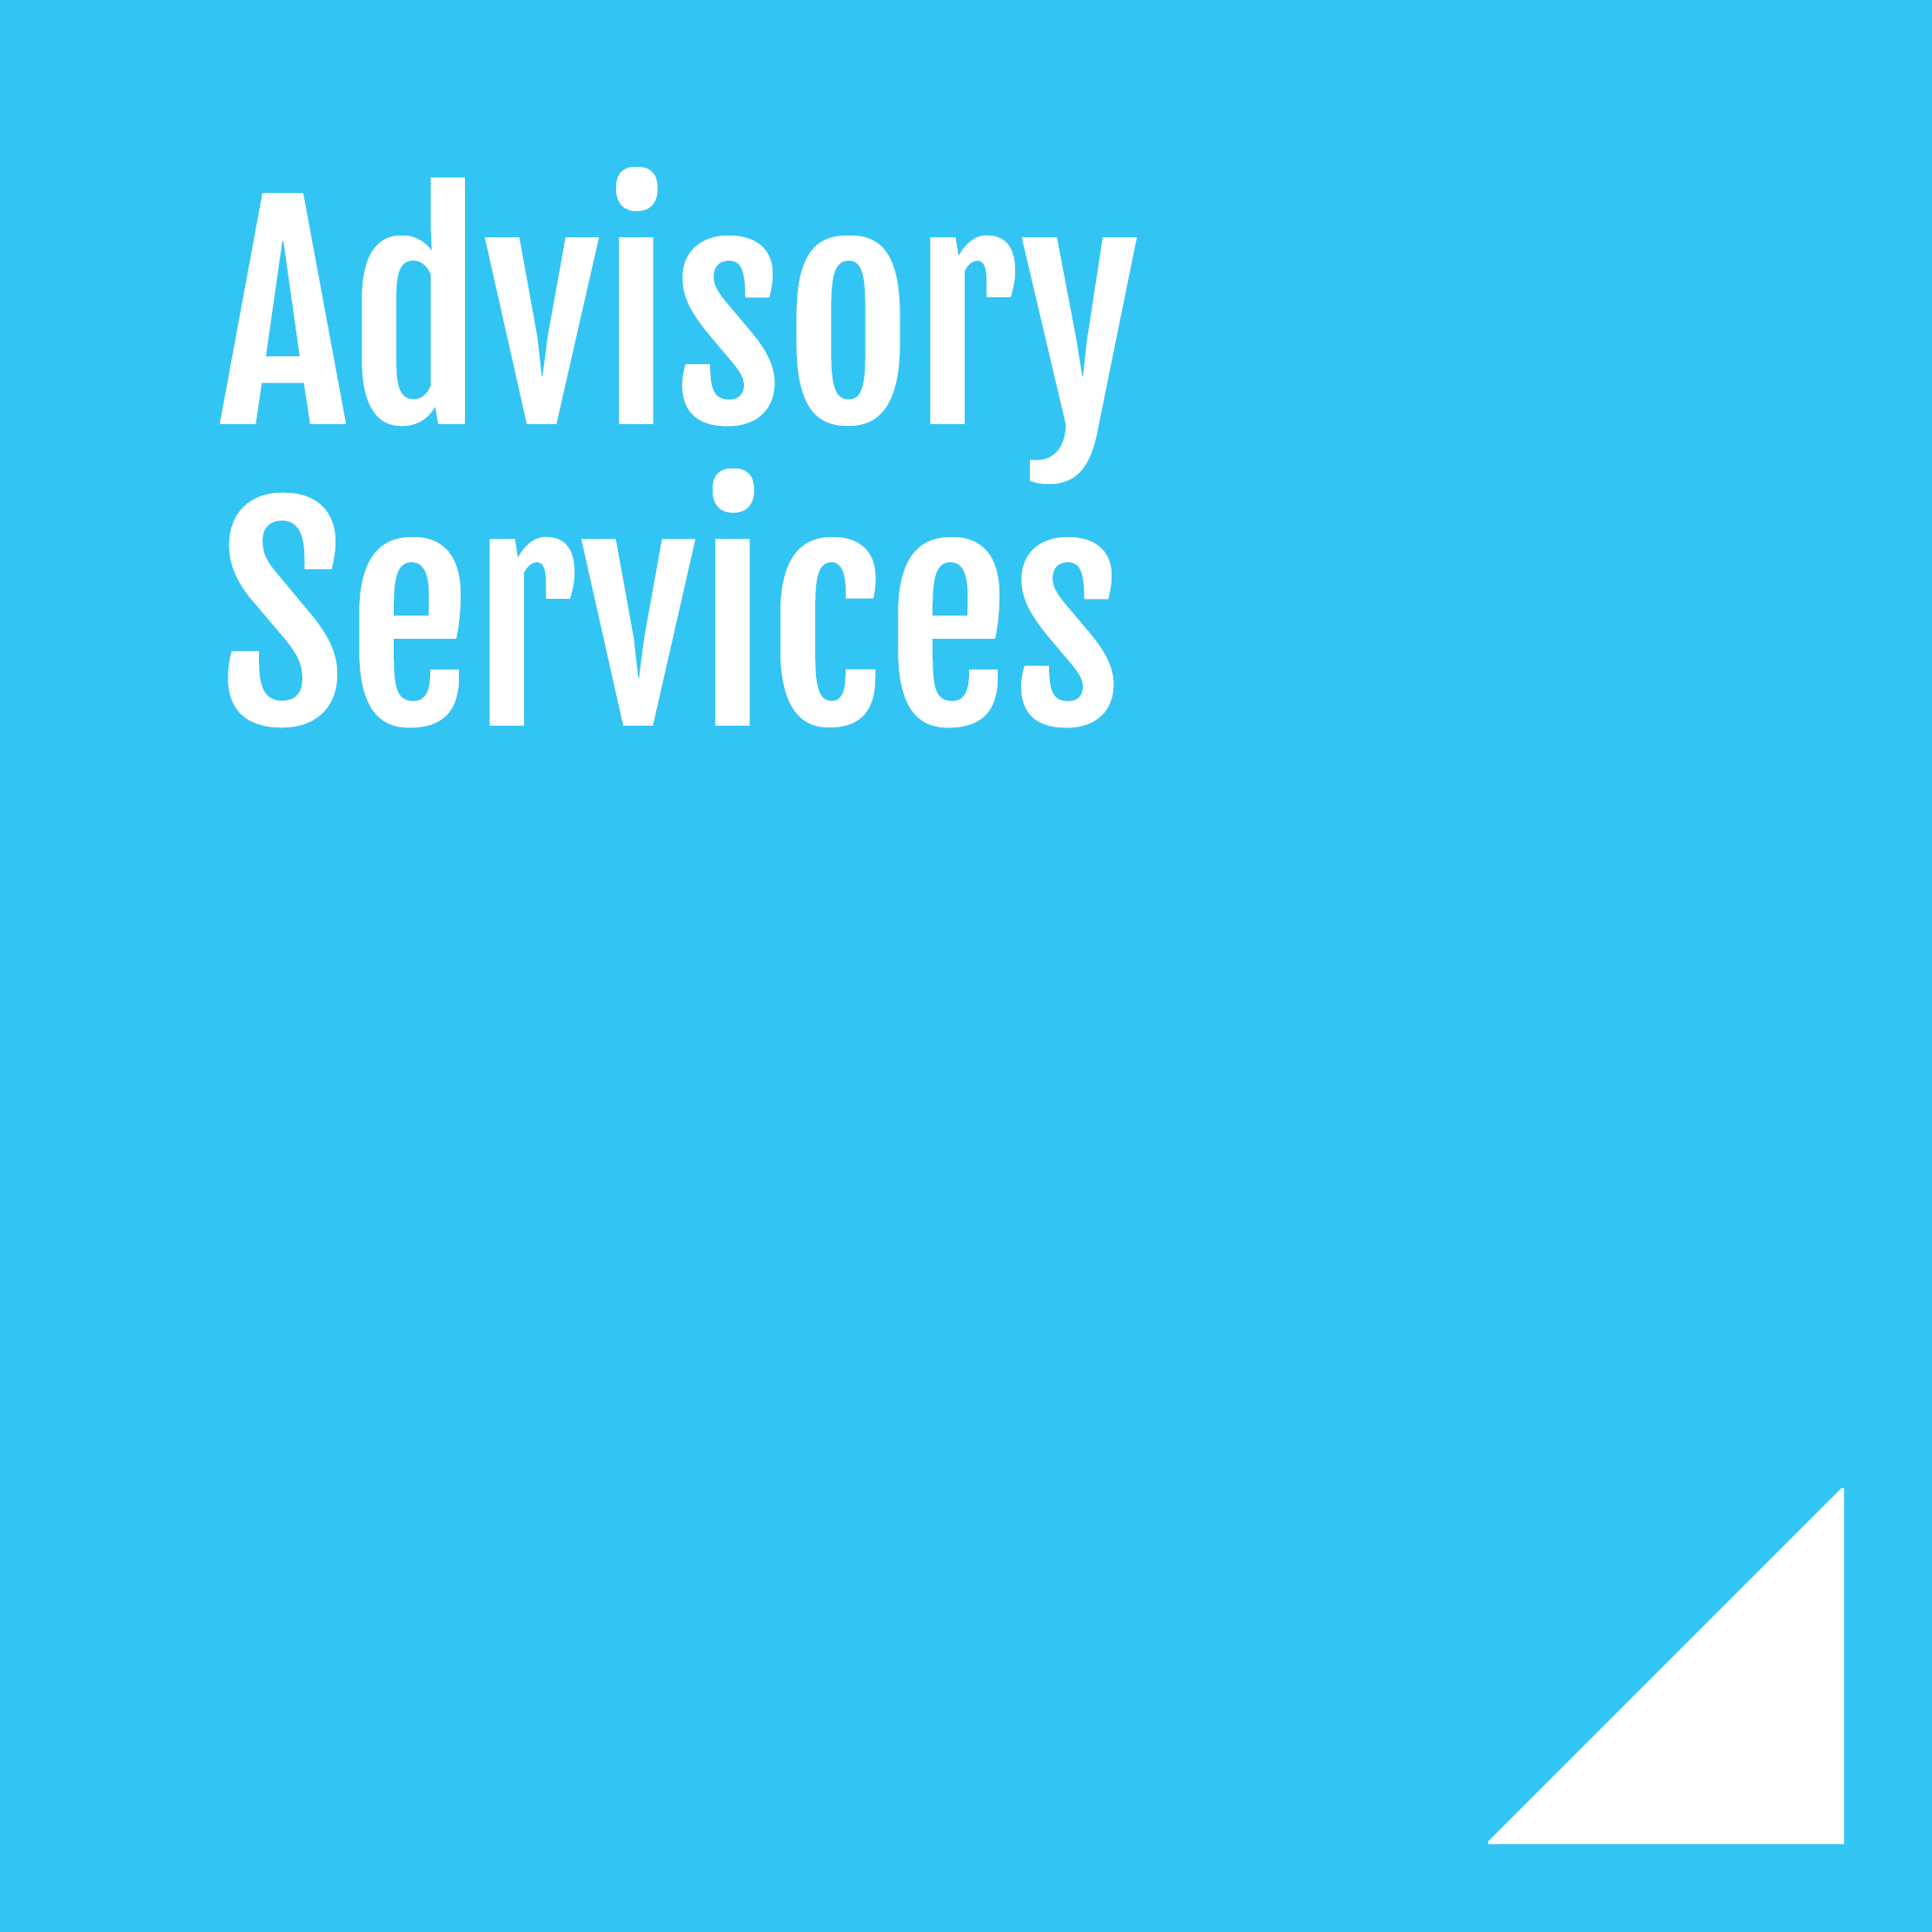 advisory-services-b2b-marketing-agency-toronto.png